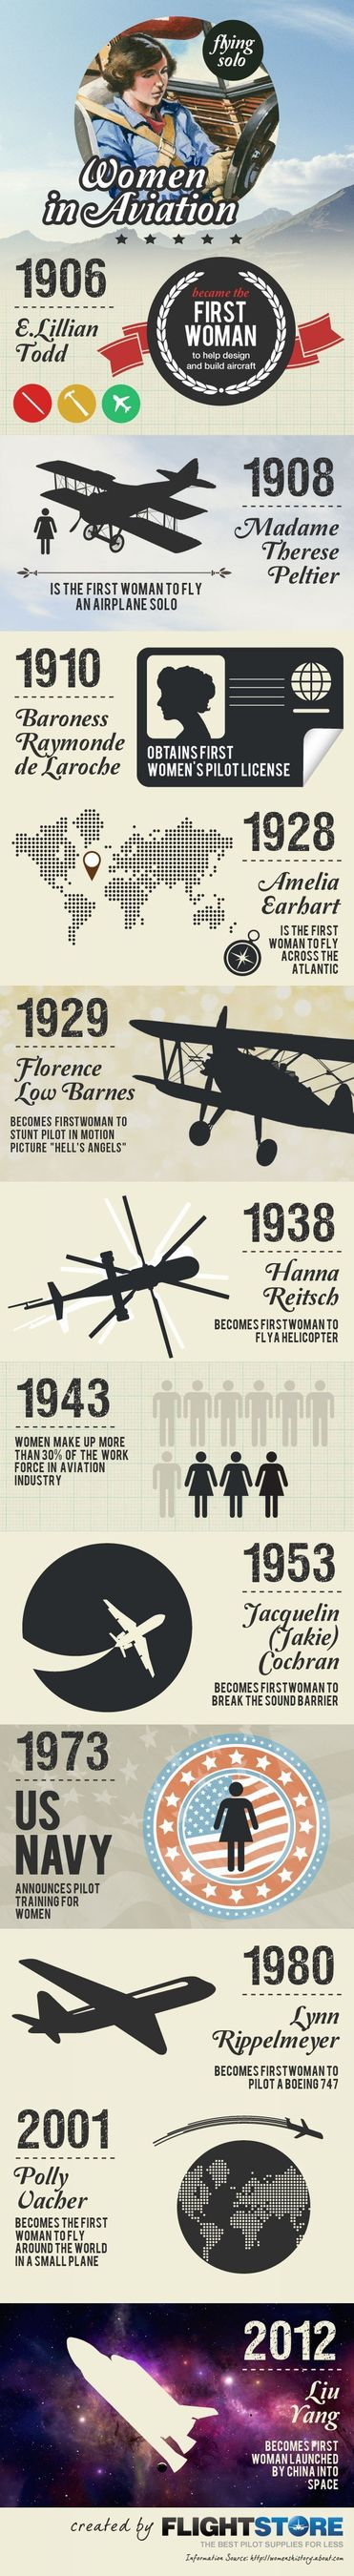 History of Women in Aviation from Flightstore